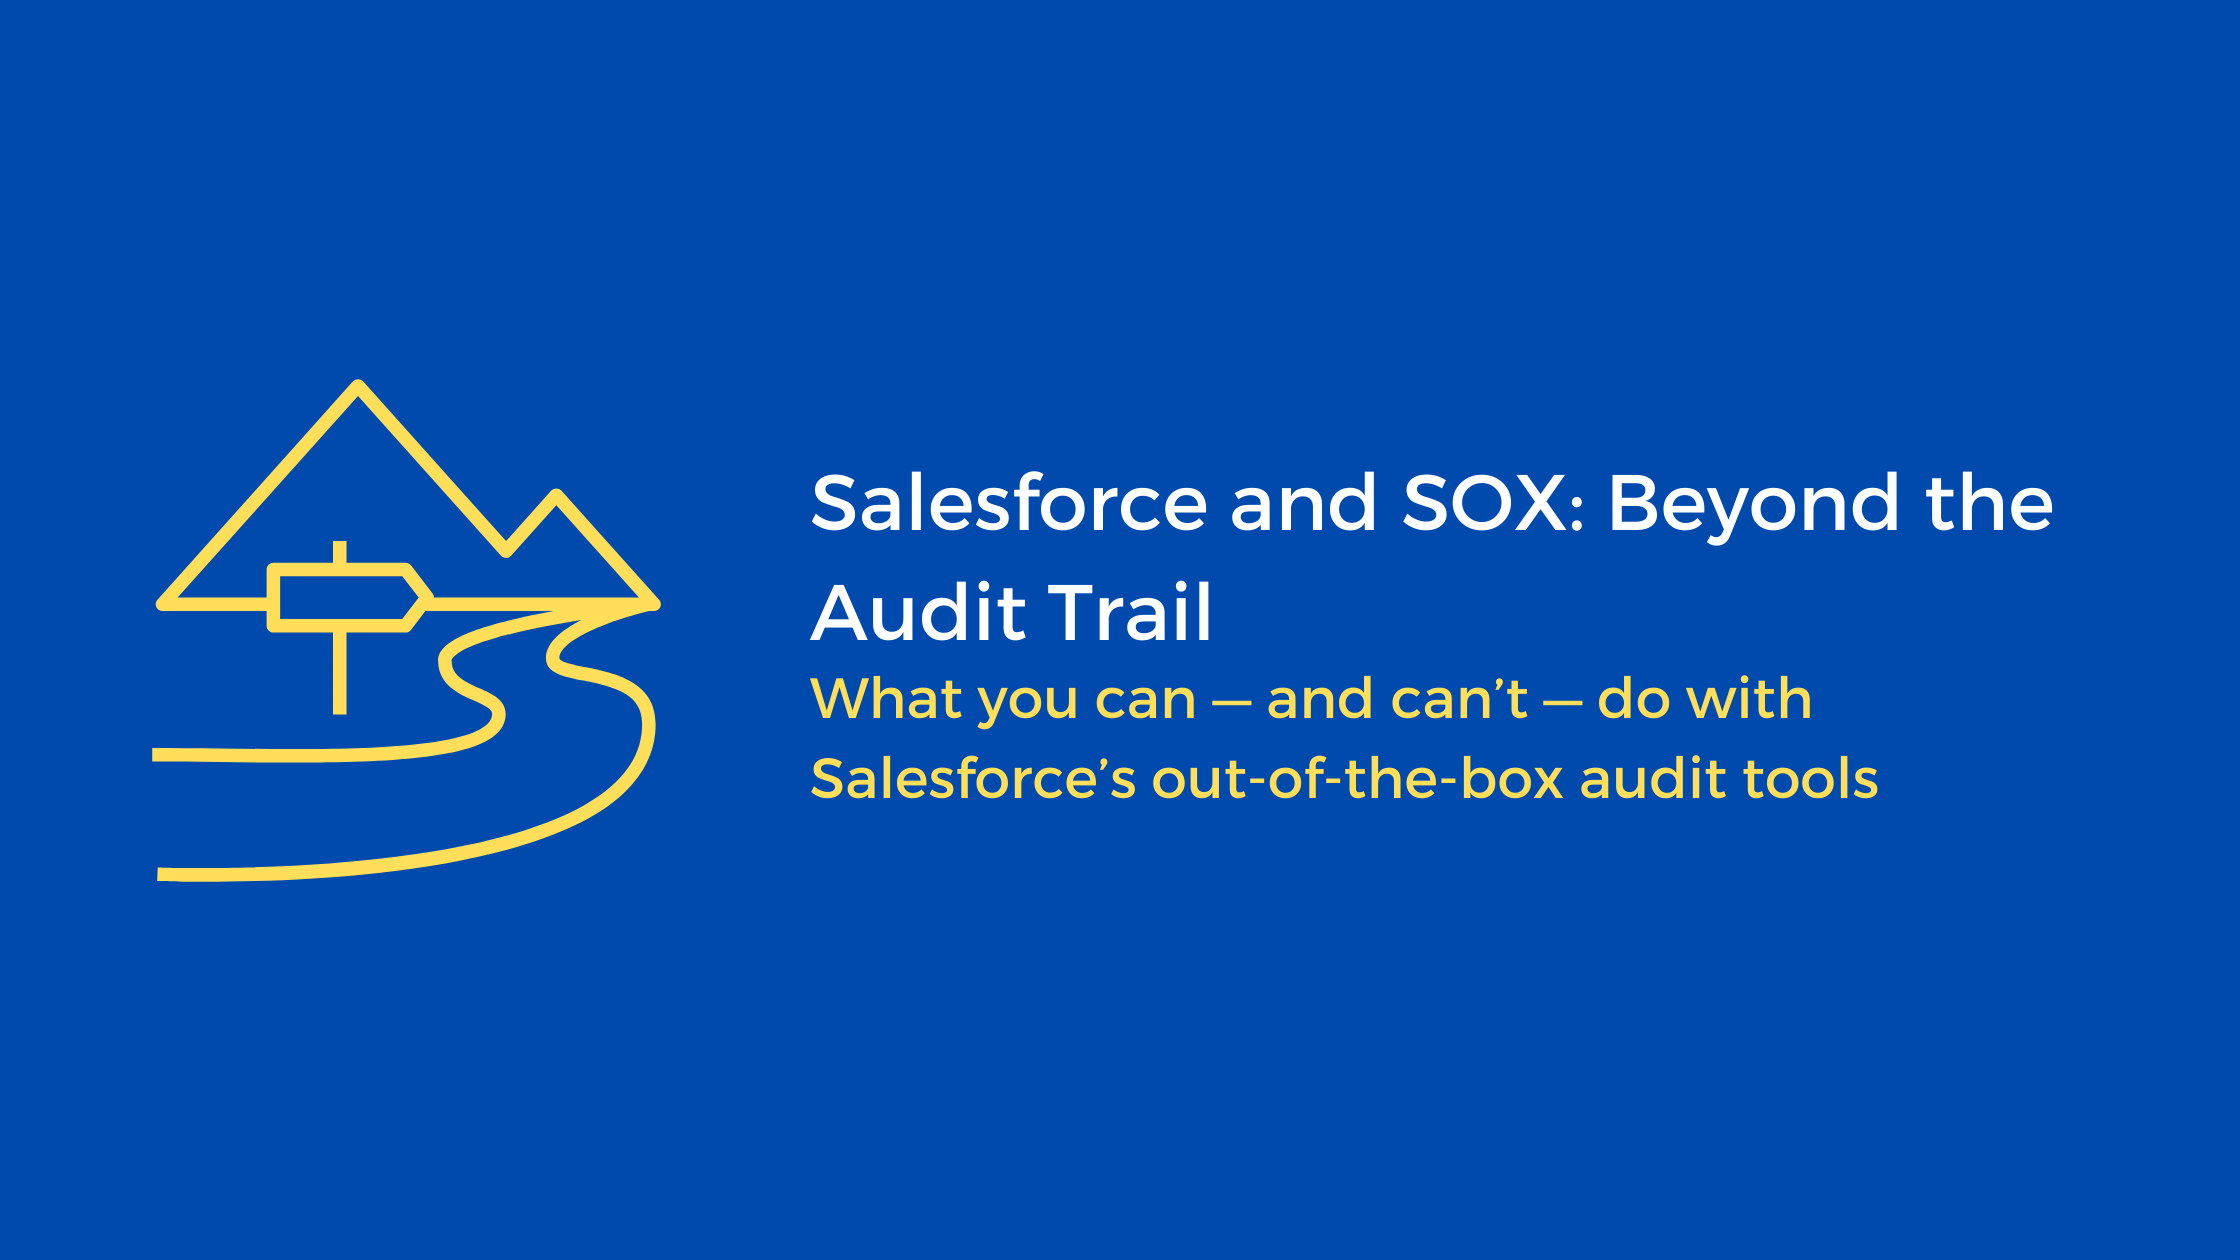 Salesforce and SOX Beyond the Audit Trail-3